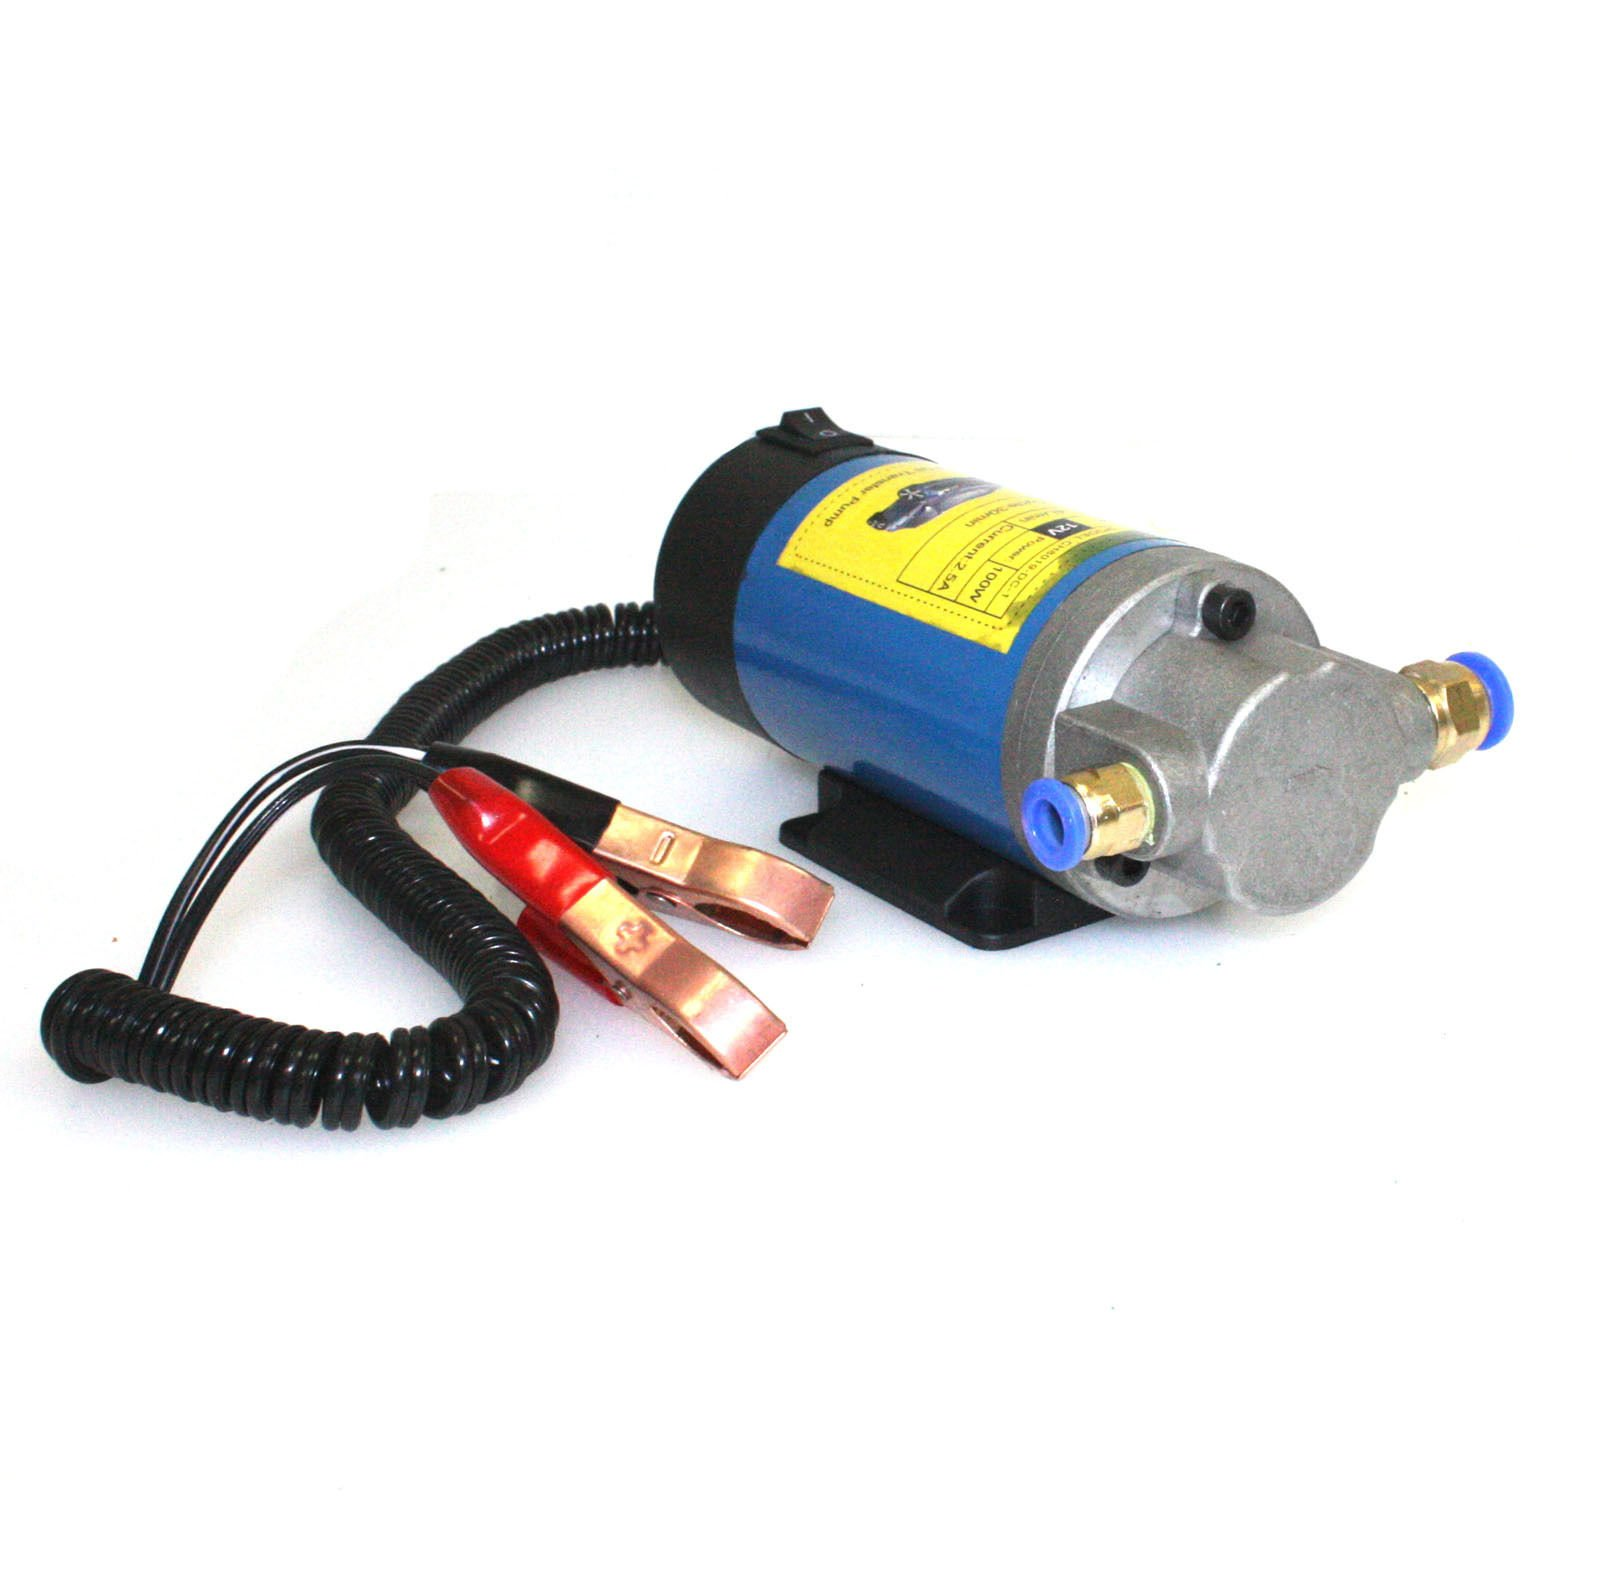 Car Vacuum Mini Extractor Pump Water Filter Air Filter Conditioner Oil 12V 4 Litre Petrol Fluid Transfer Engine Miniature Transferer Vehicle High Efficiency Replacement Parts - Skroutz